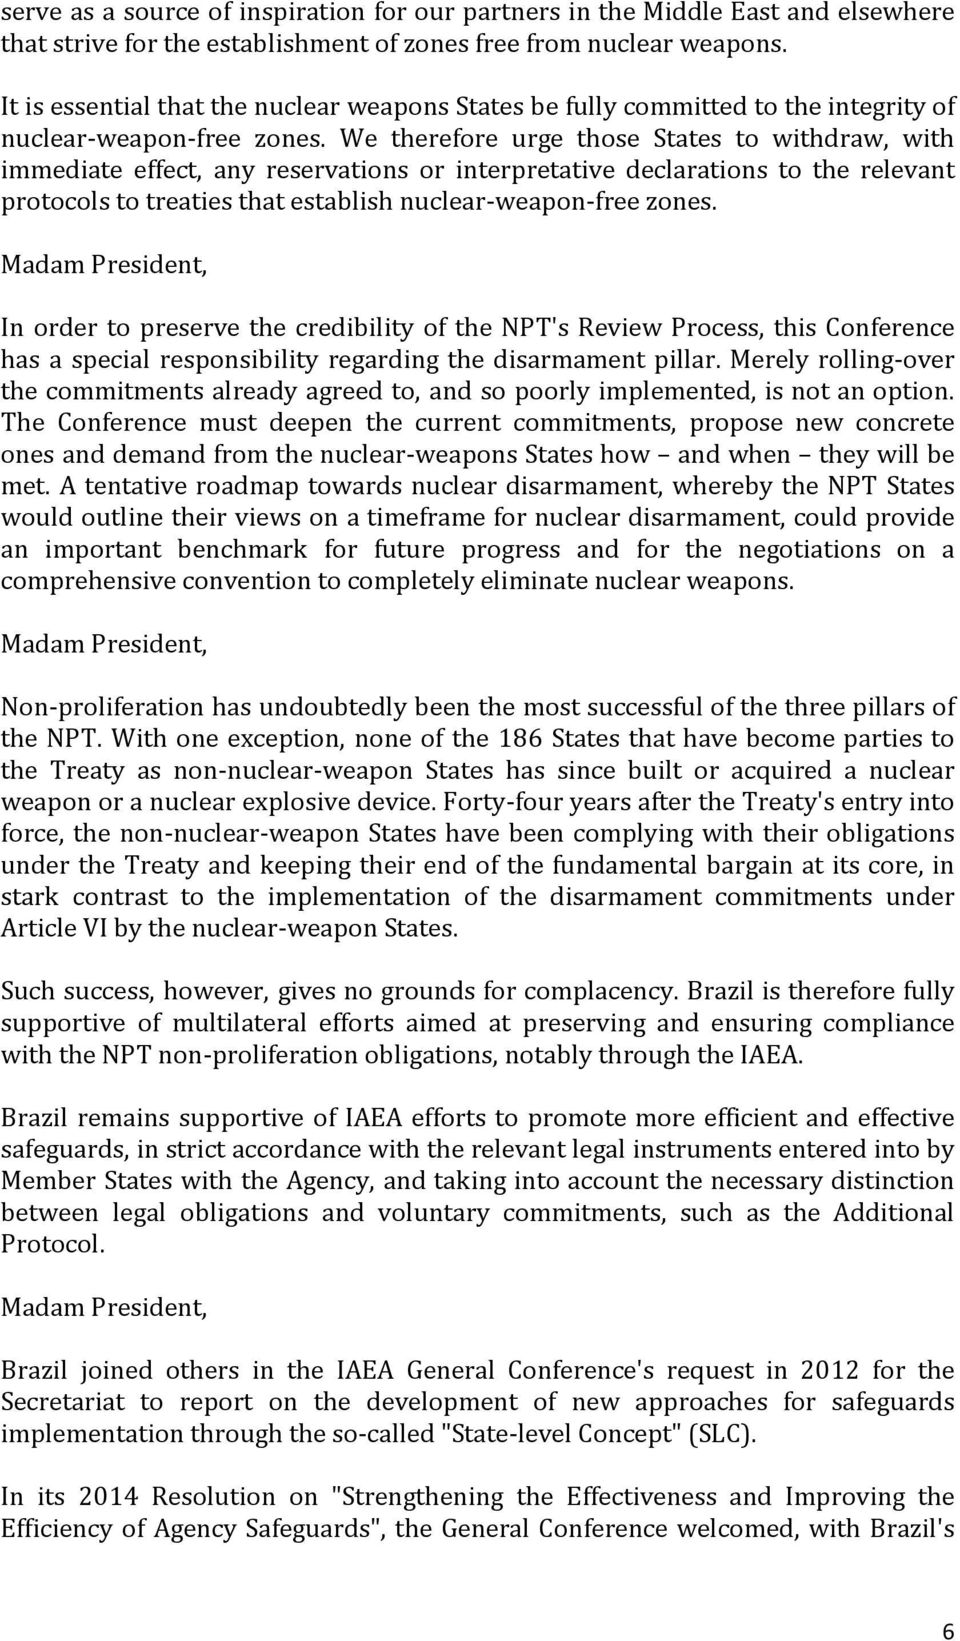 We therefore urge those States to withdraw, with immediate effect, any reservations or interpretative declarations to the relevant protocols to treaties that establish nuclear-weapon-free zones.